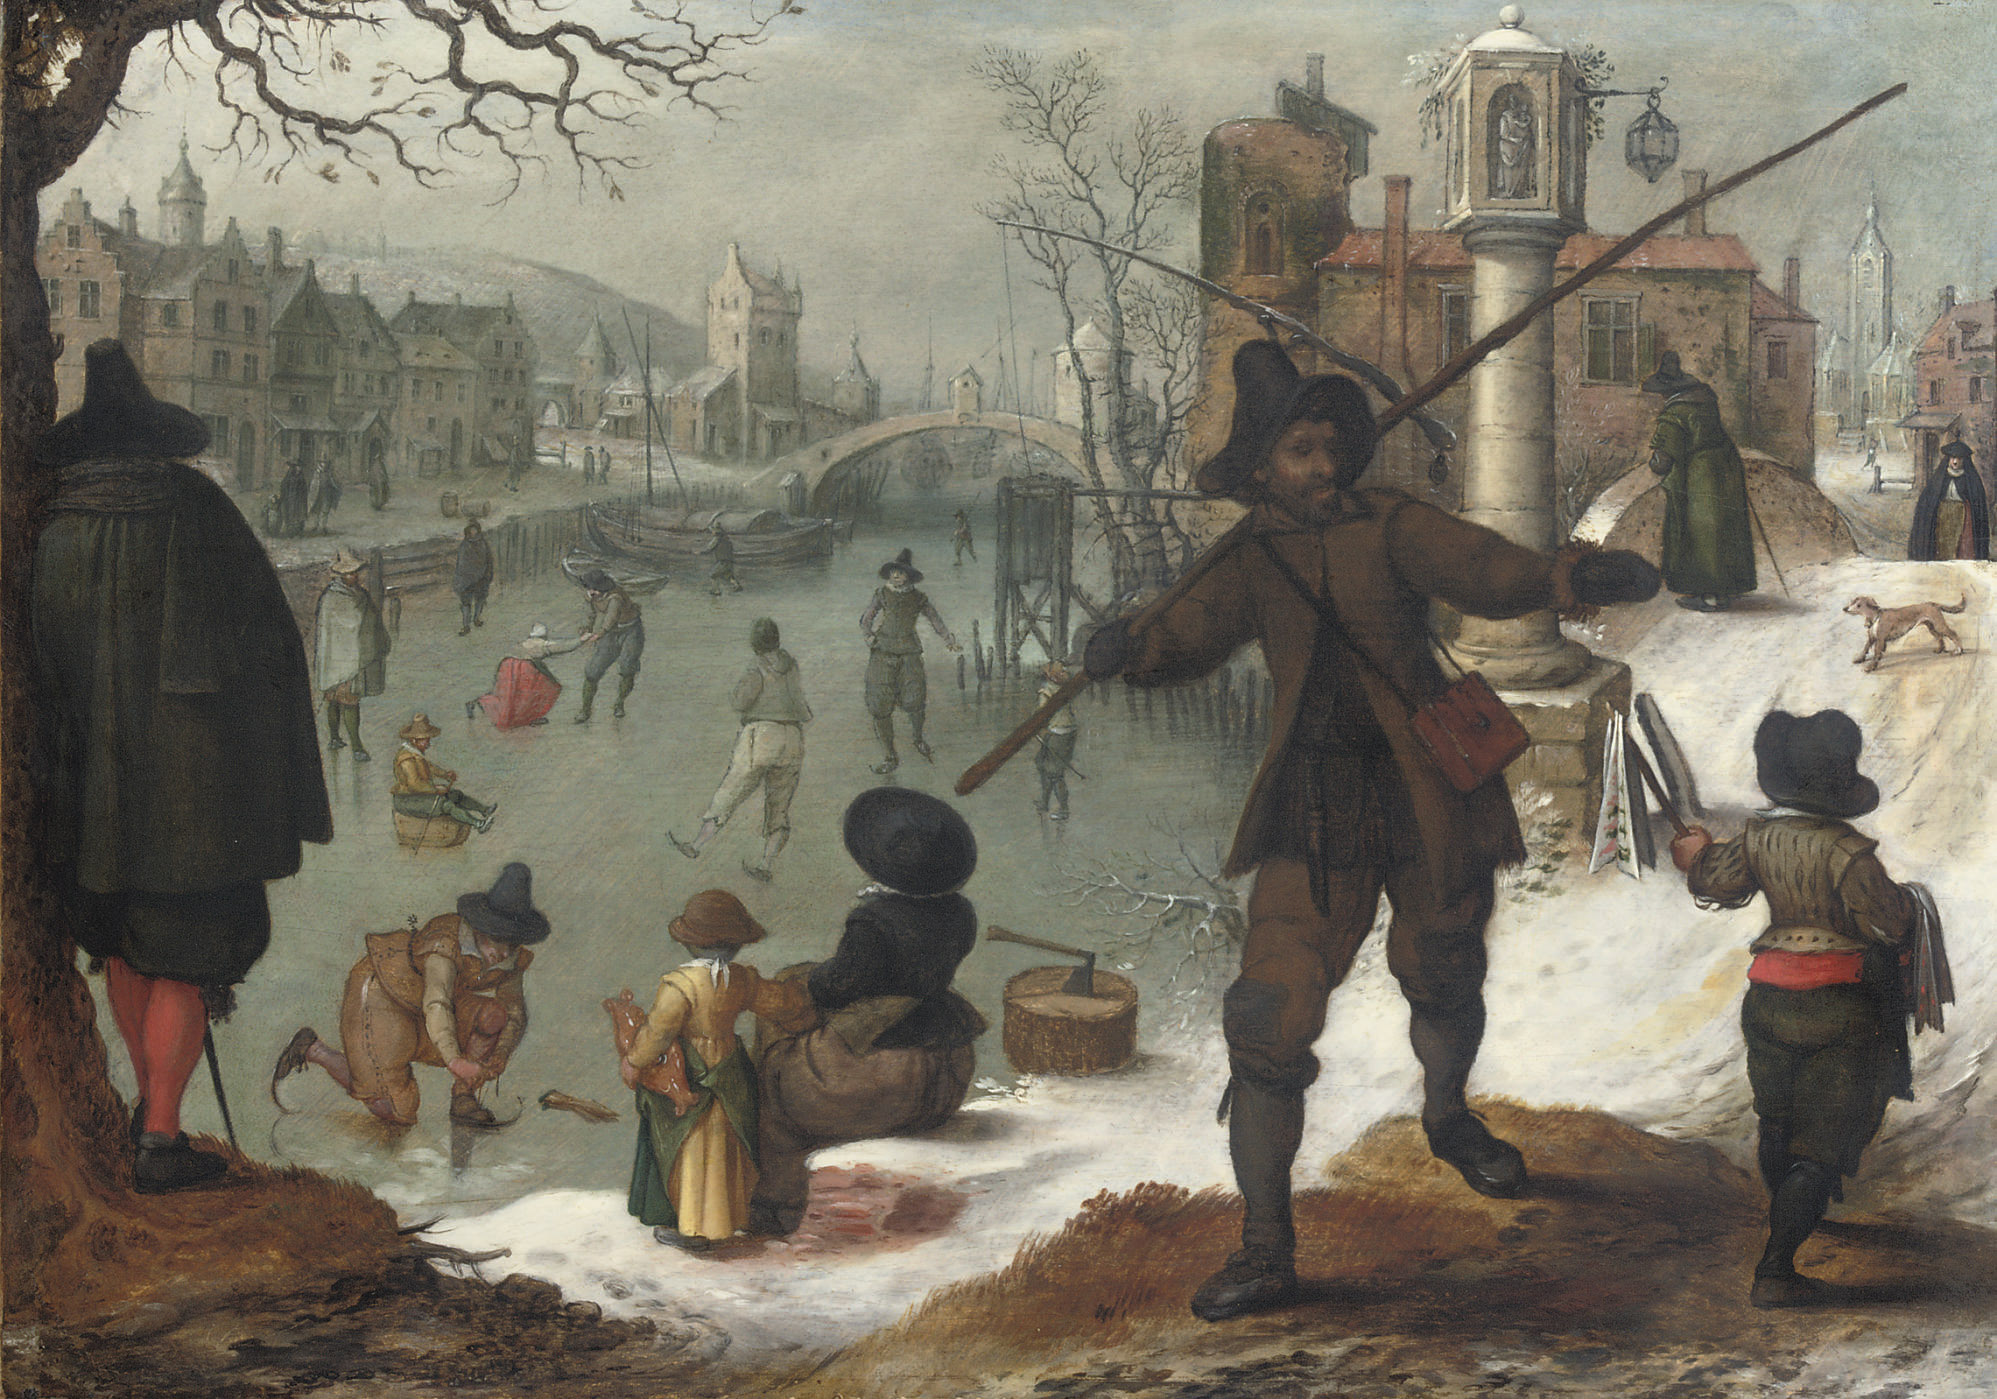 Skaters on a frozen waterway in a town